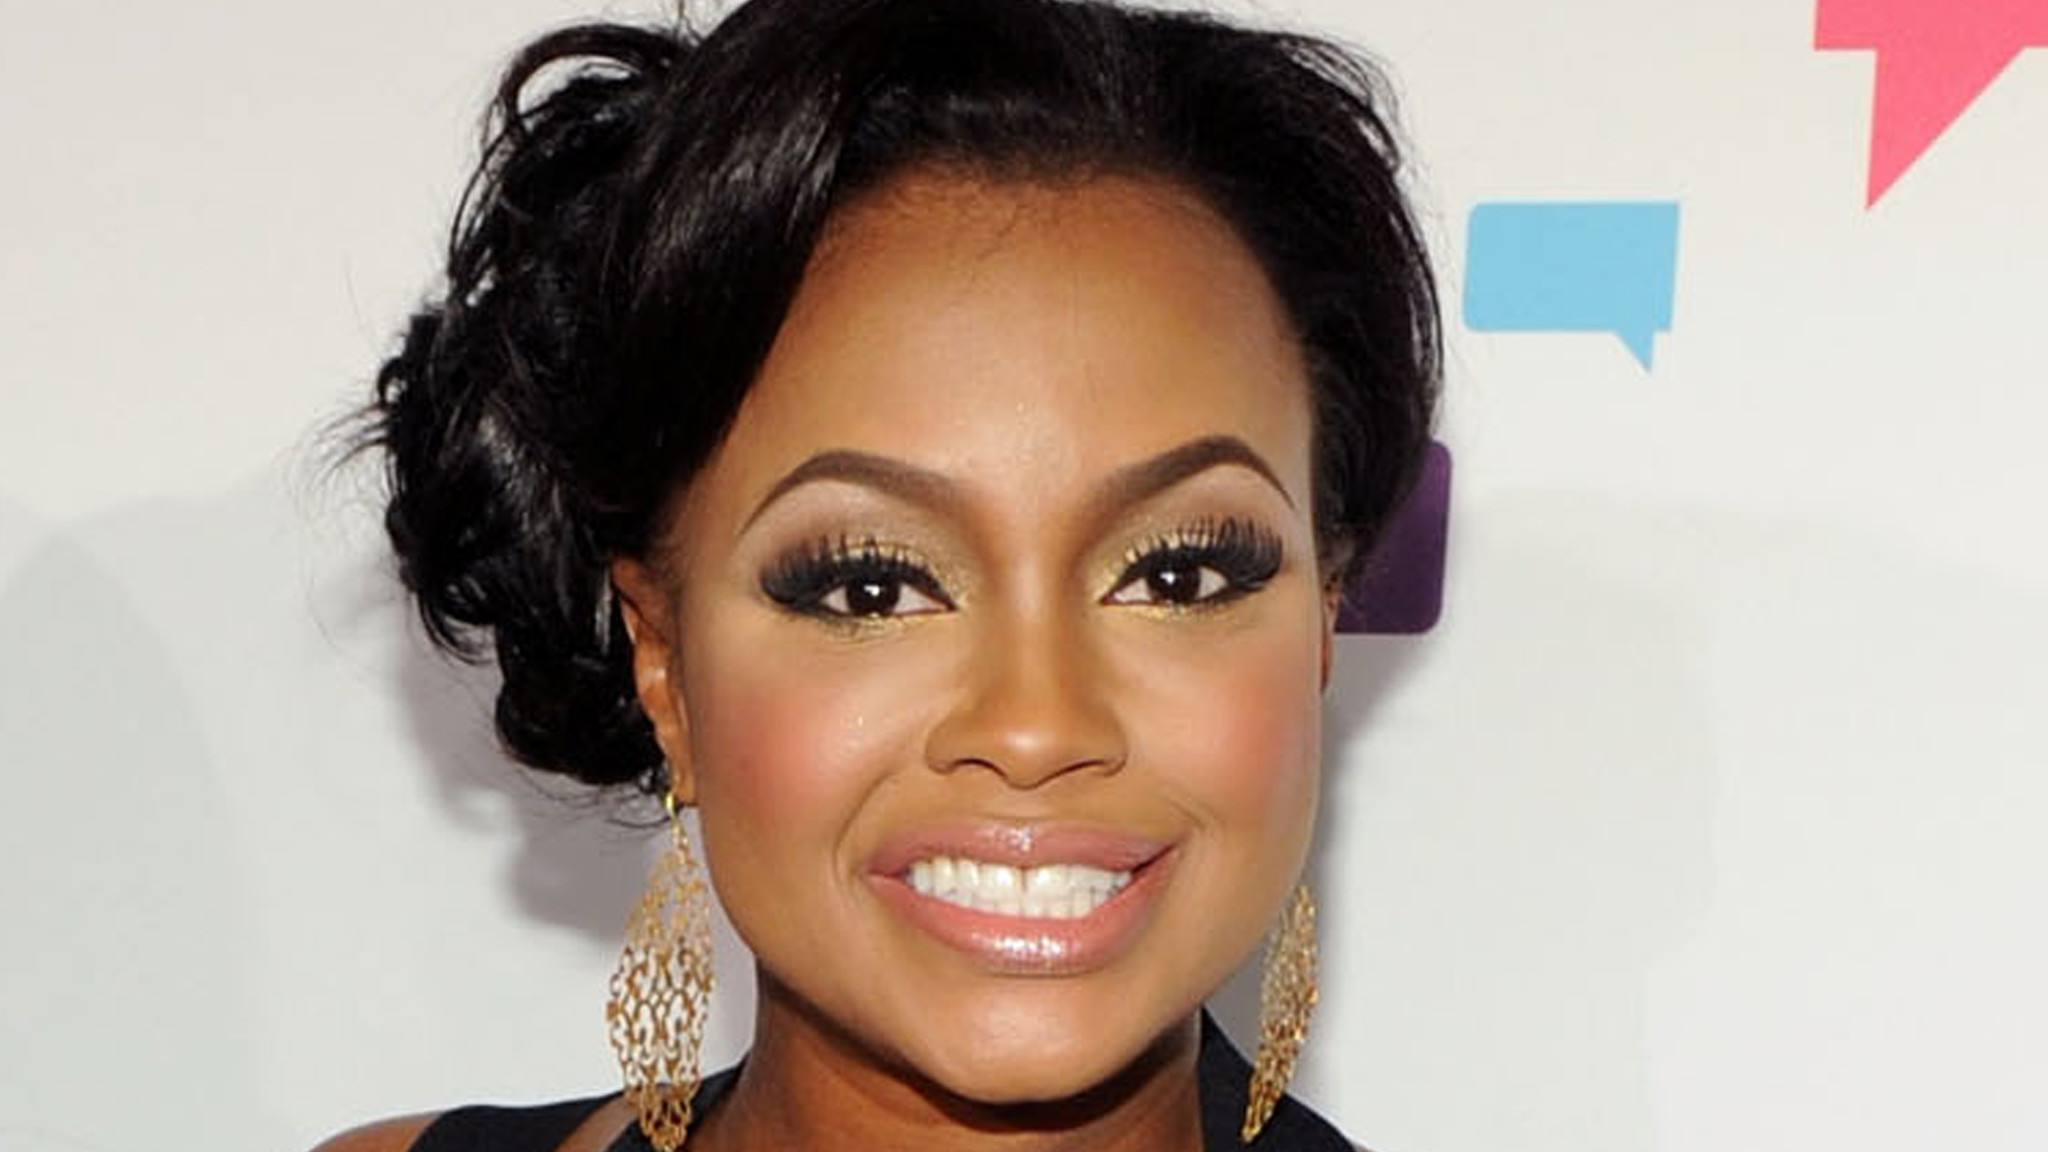 Phaedra Net Worth